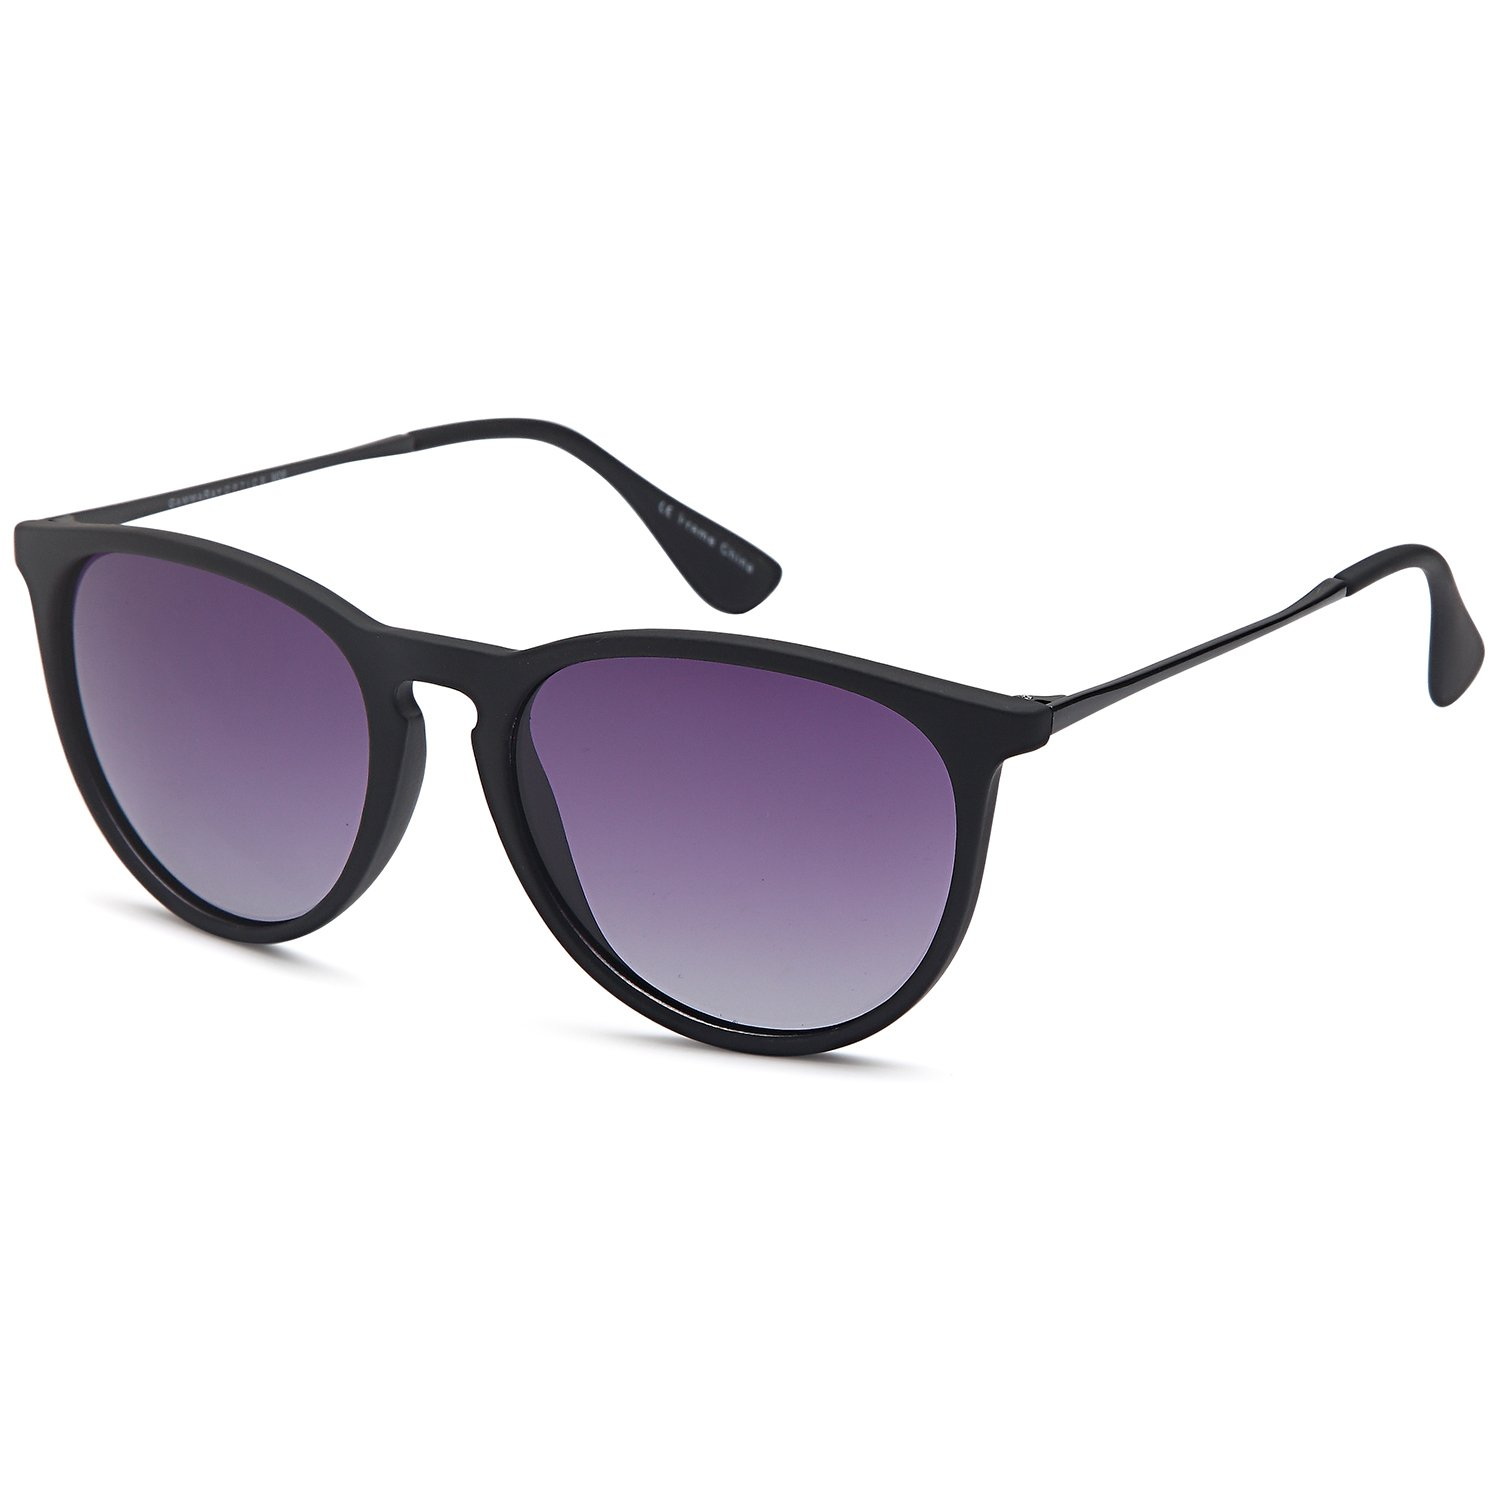 GAMMA RAY Polarized Classic UV400 Sunglasses Gamma Ray Optics